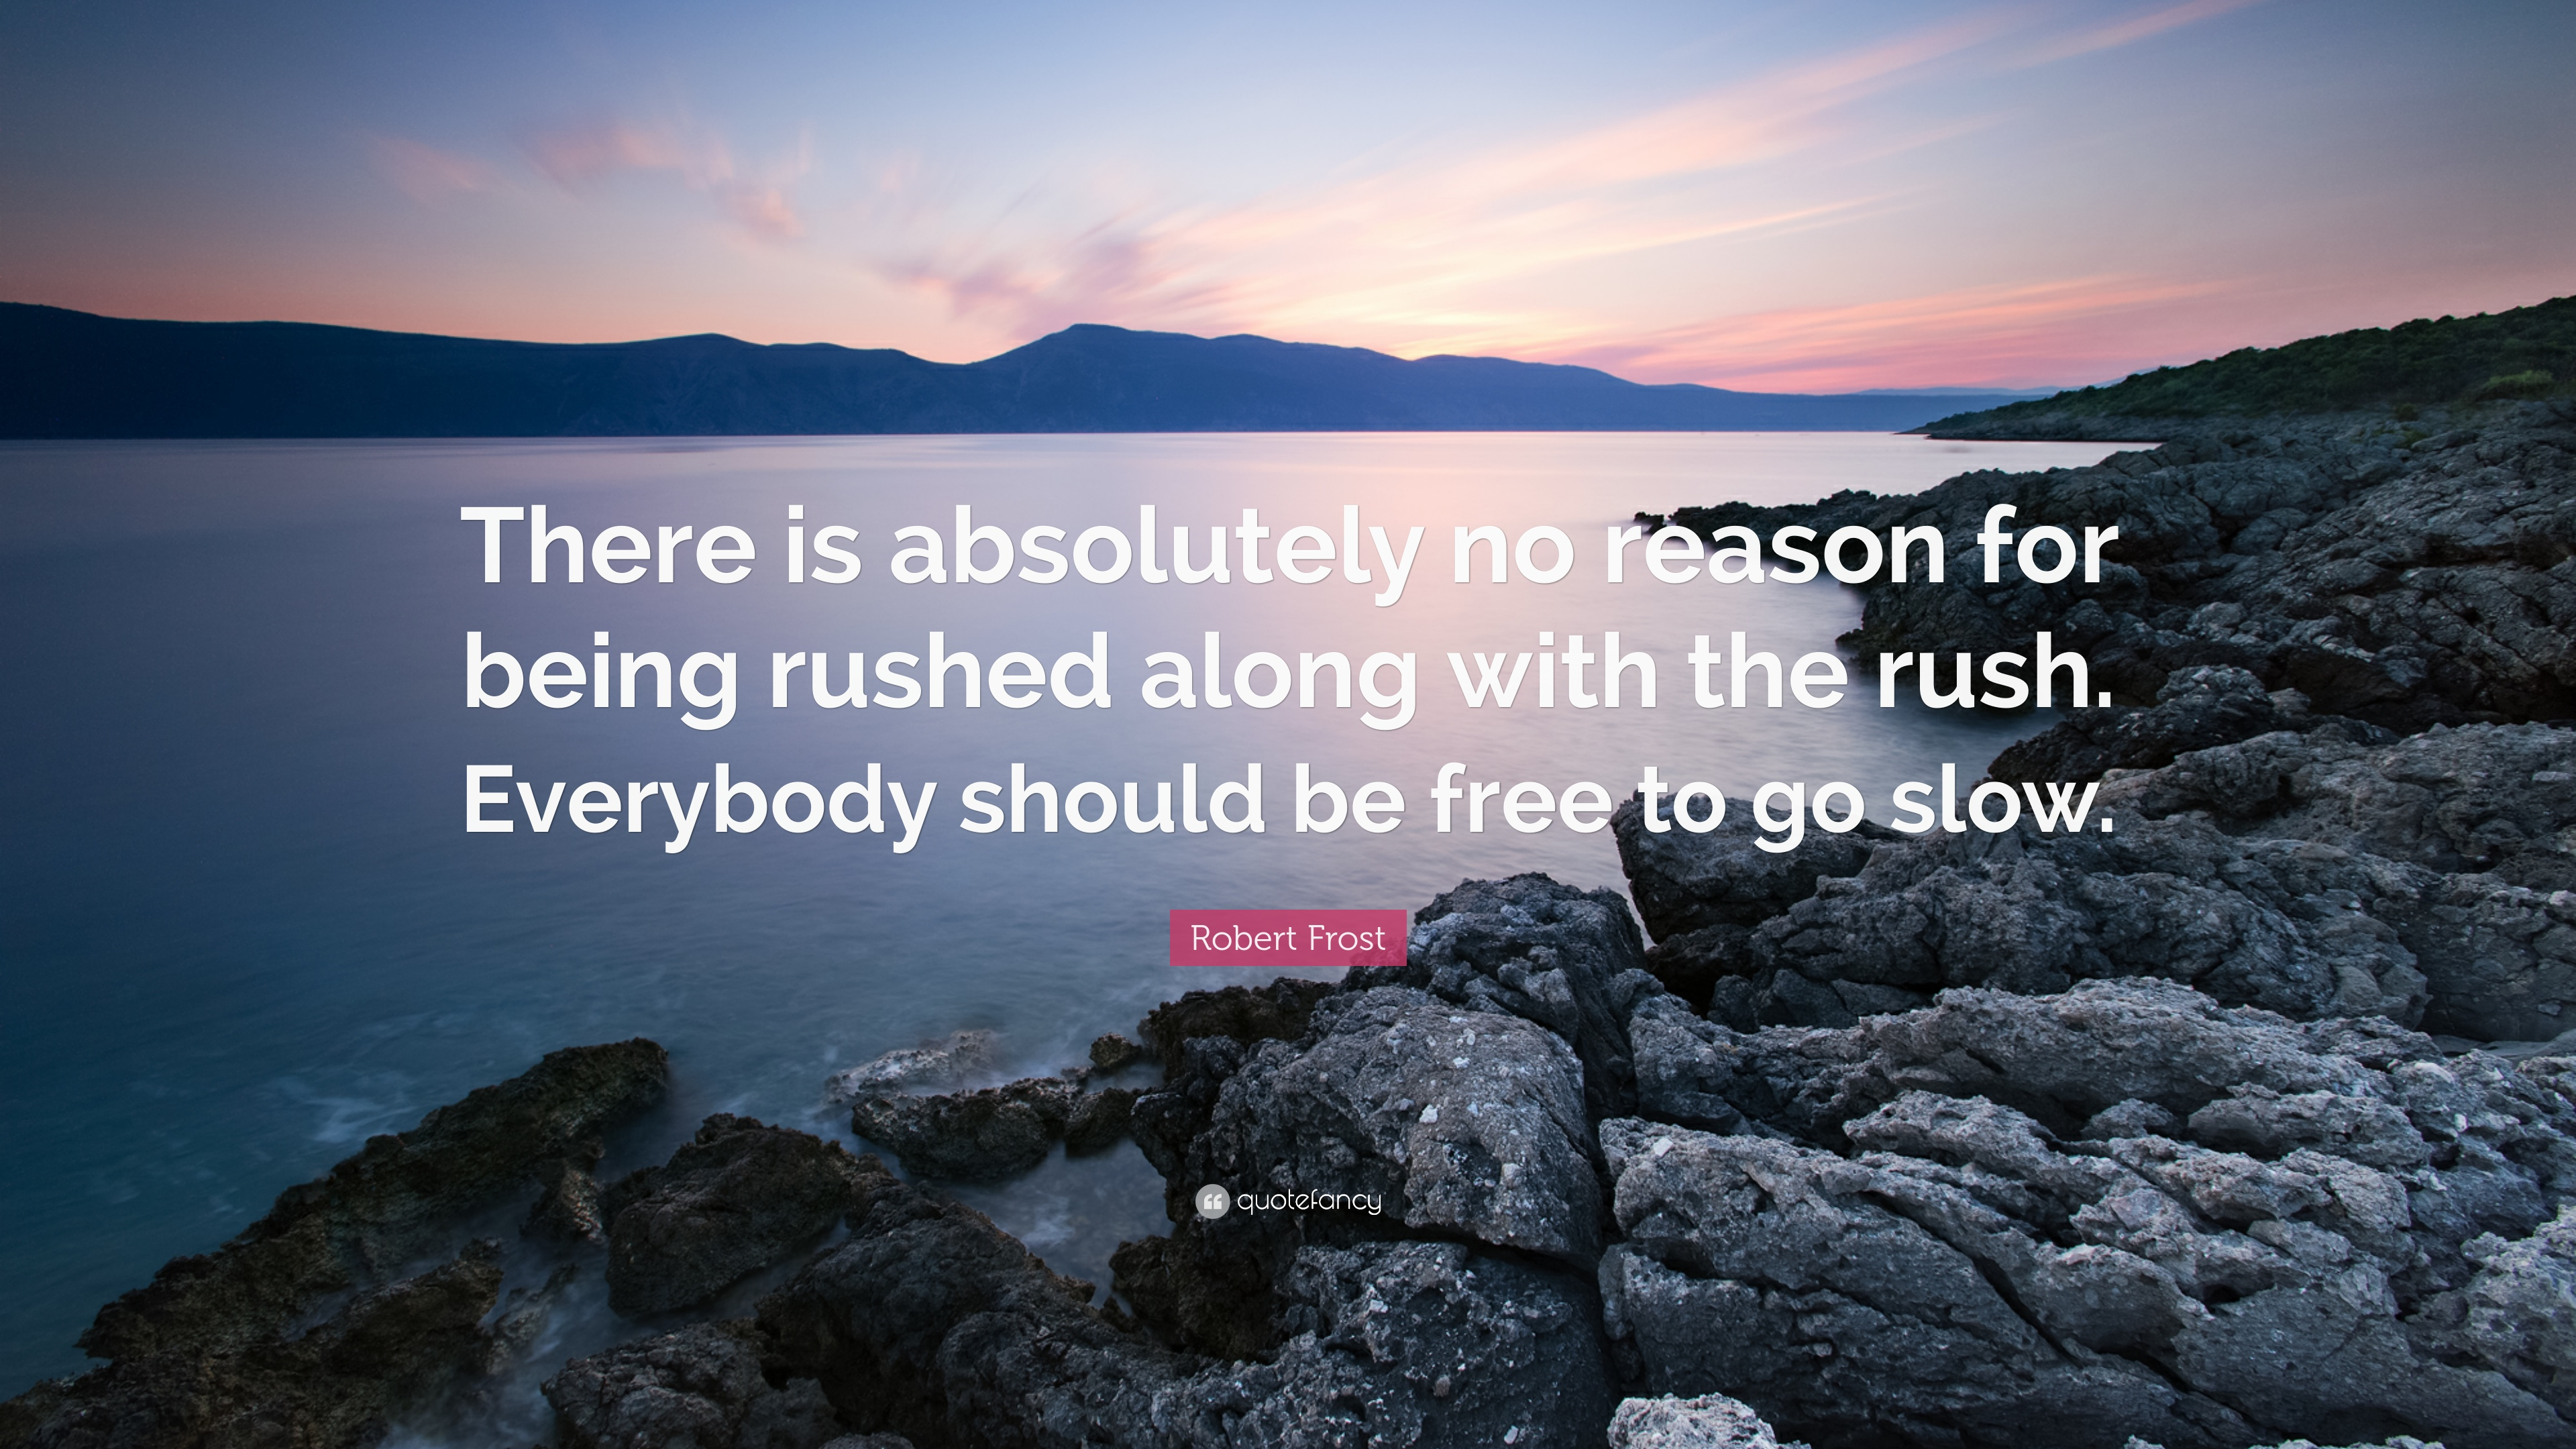 Robert Frost Quote There Is Absolutely No Reason For Being Rushed